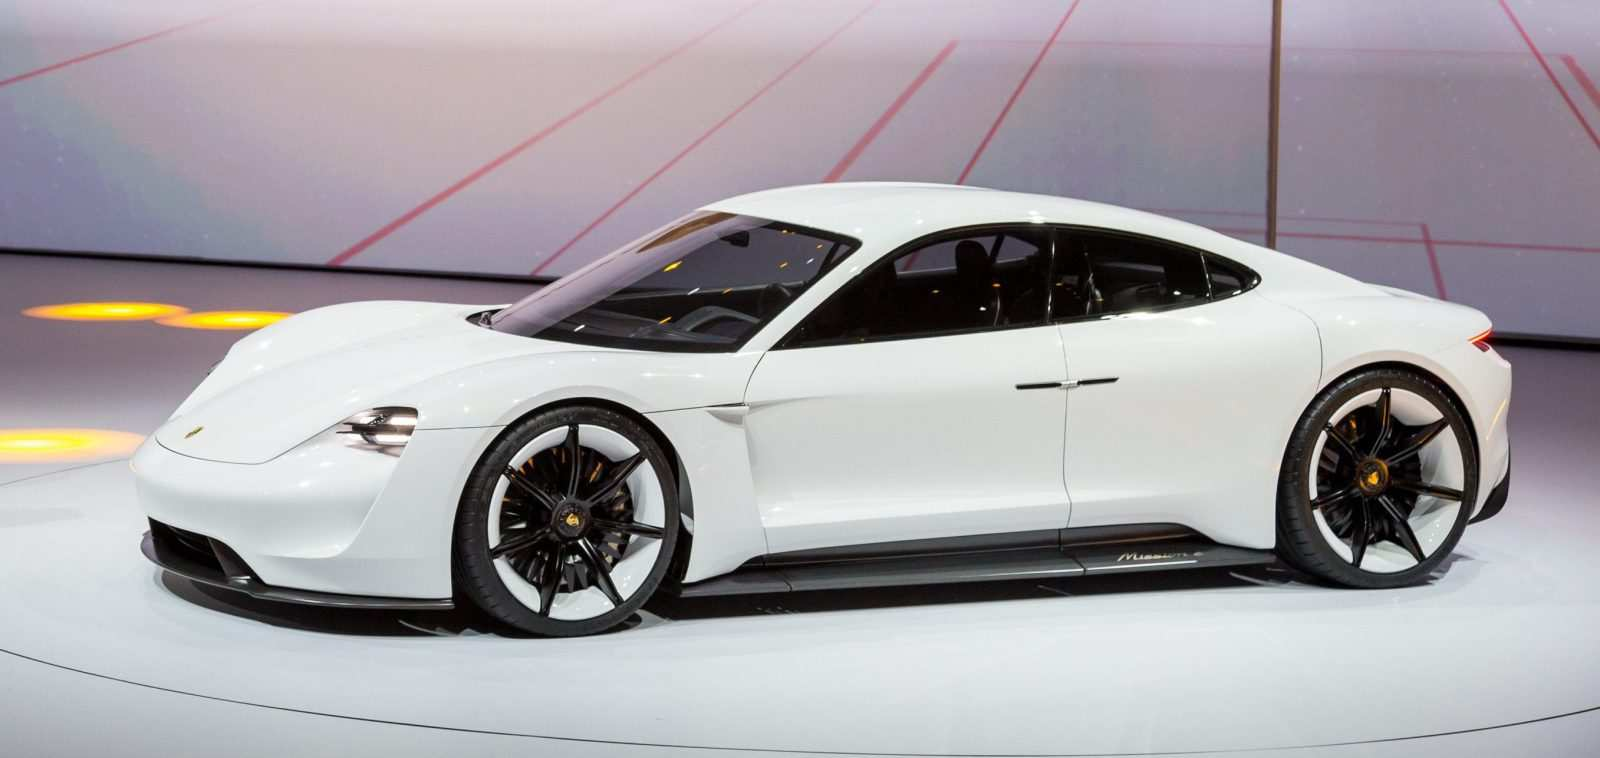 42 All New 2020 Porsche Electric Car History